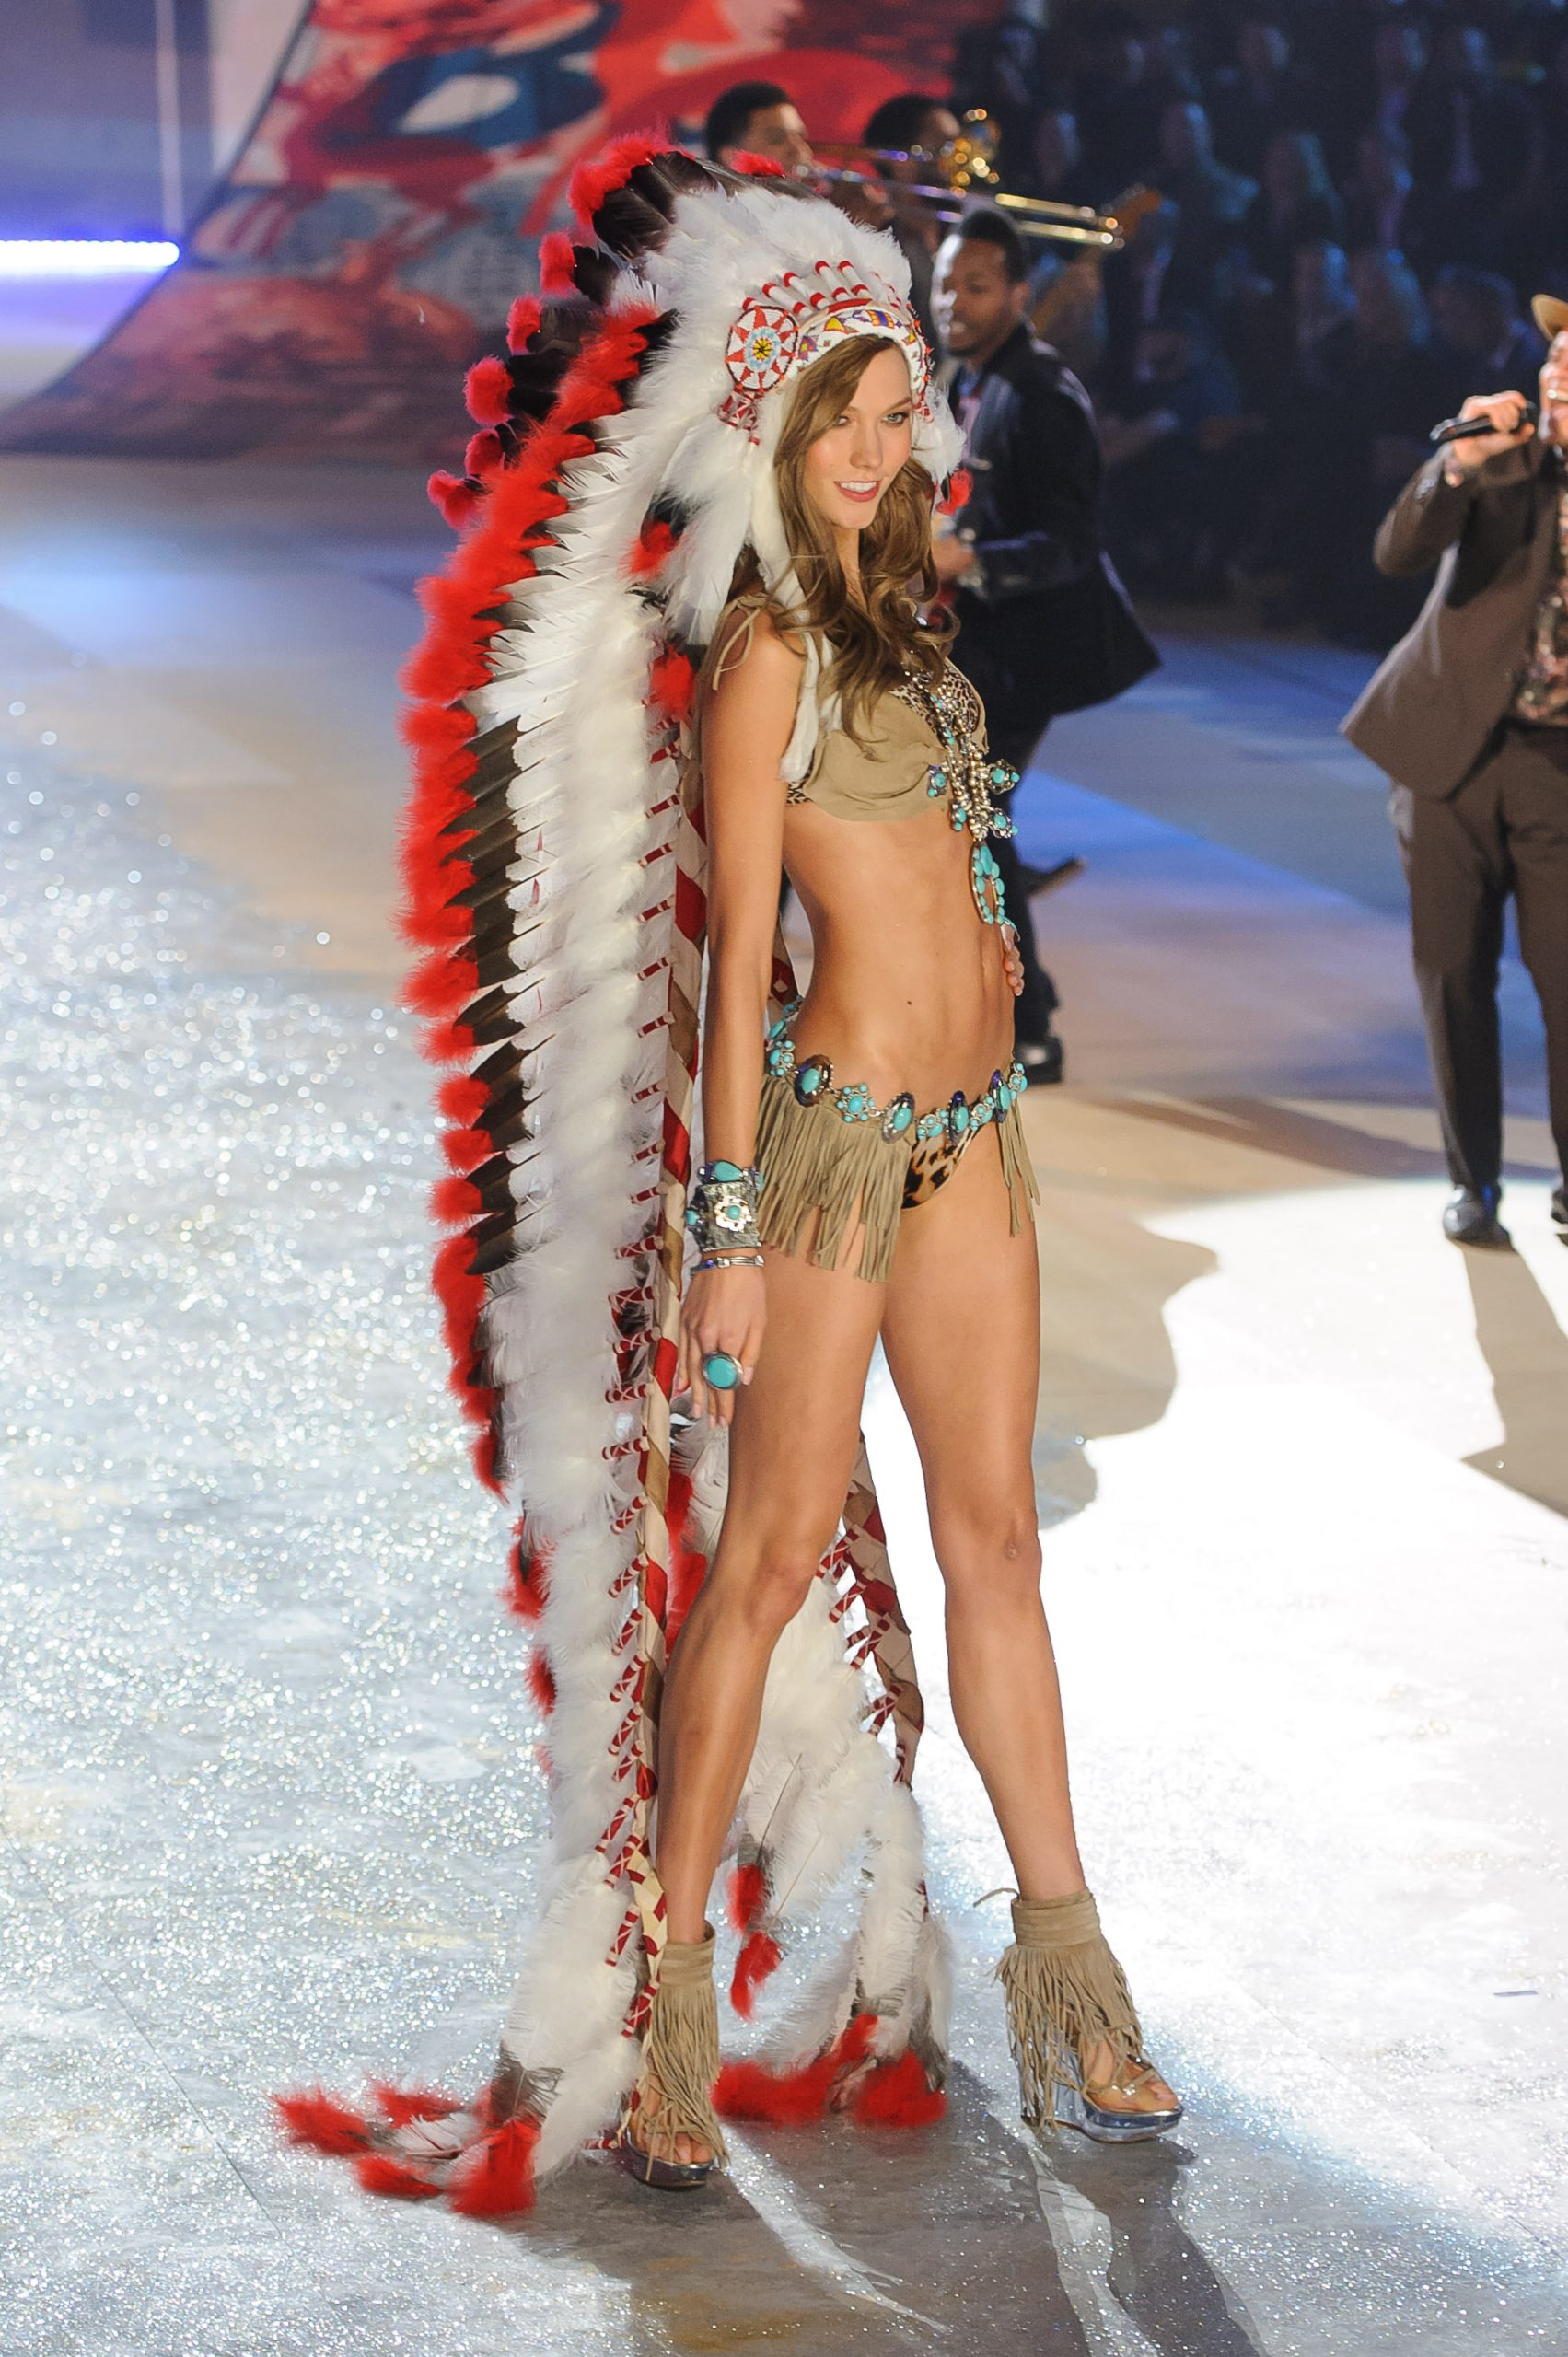 Karlie Kloss posing at the end of the Victorias Secret fashion show runway in Native American inspired underwear and a long trailing feather headdress